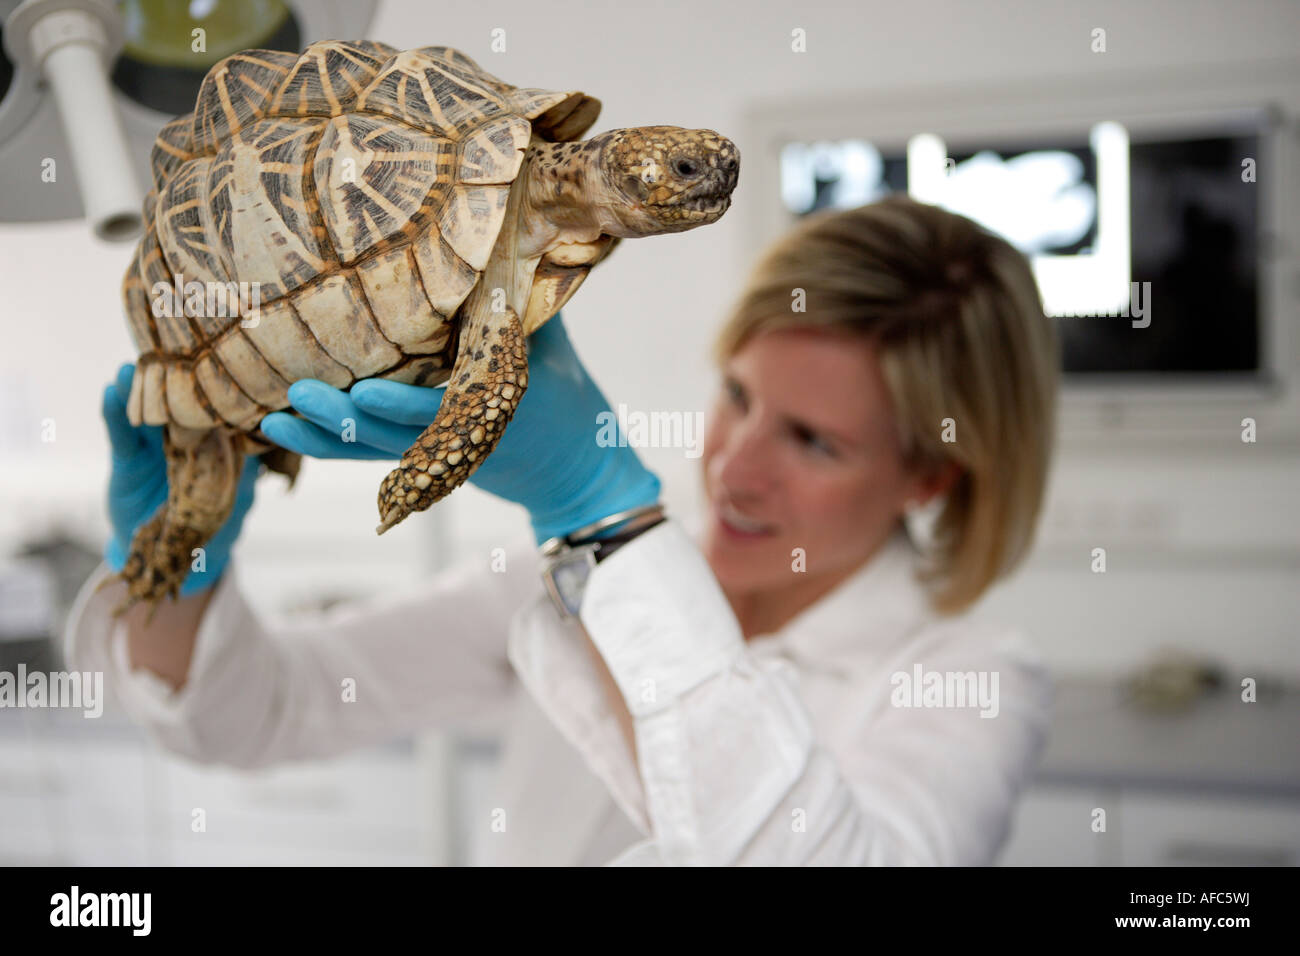 The zoo veterinary surgeon of the zoo Allwetterzoo Dr Sandra Silinski during her work with a indian star tortoise - Stock Image